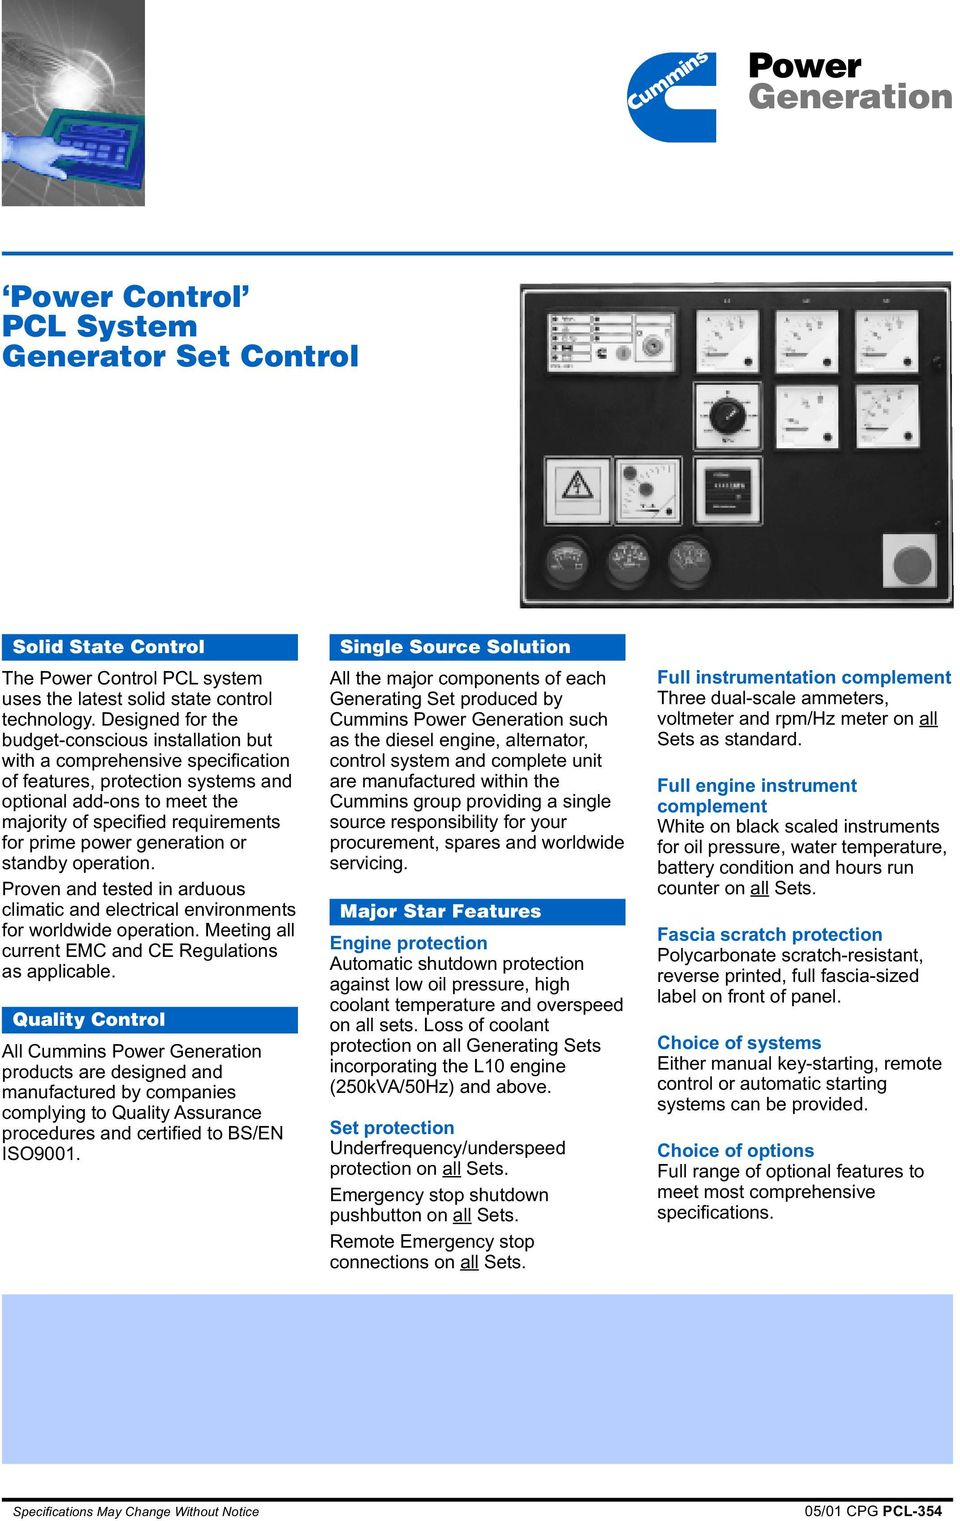 Power Generation Control Pcl System Generator Set Pdf Stamford Wiring Diagram 125 Mp Or Standby Operation Proven And Tested In Arduous Climatic Electrical Environments For